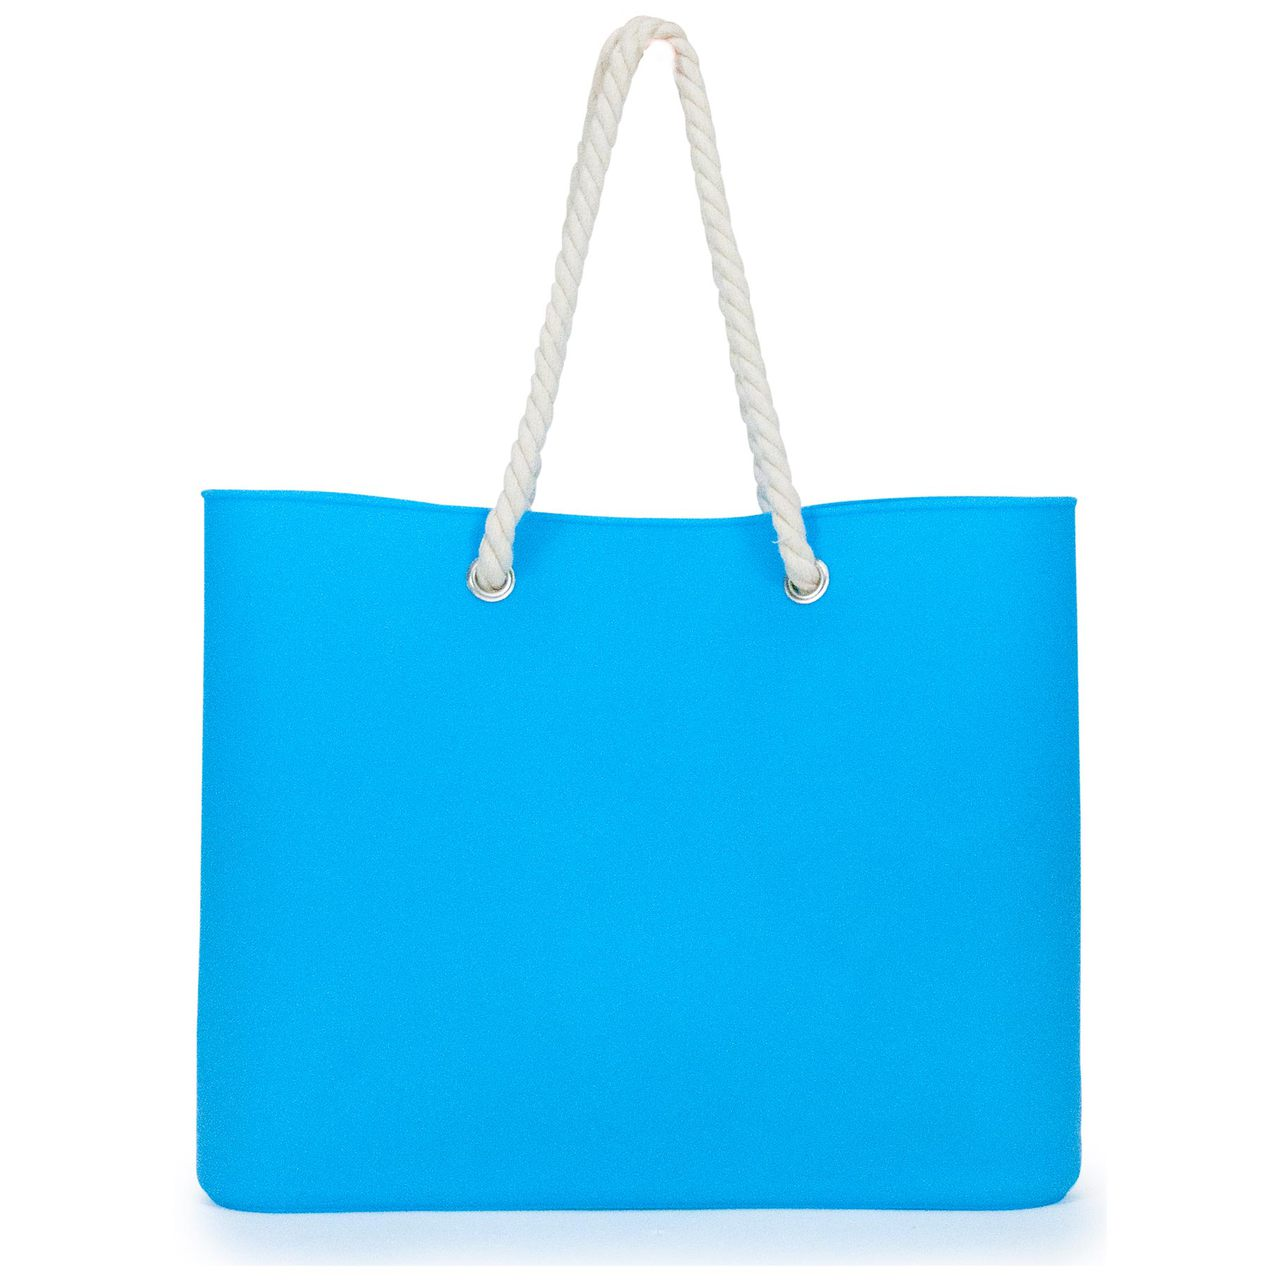 Jelly Tote Silicone in Blue | The Design Gift Shop